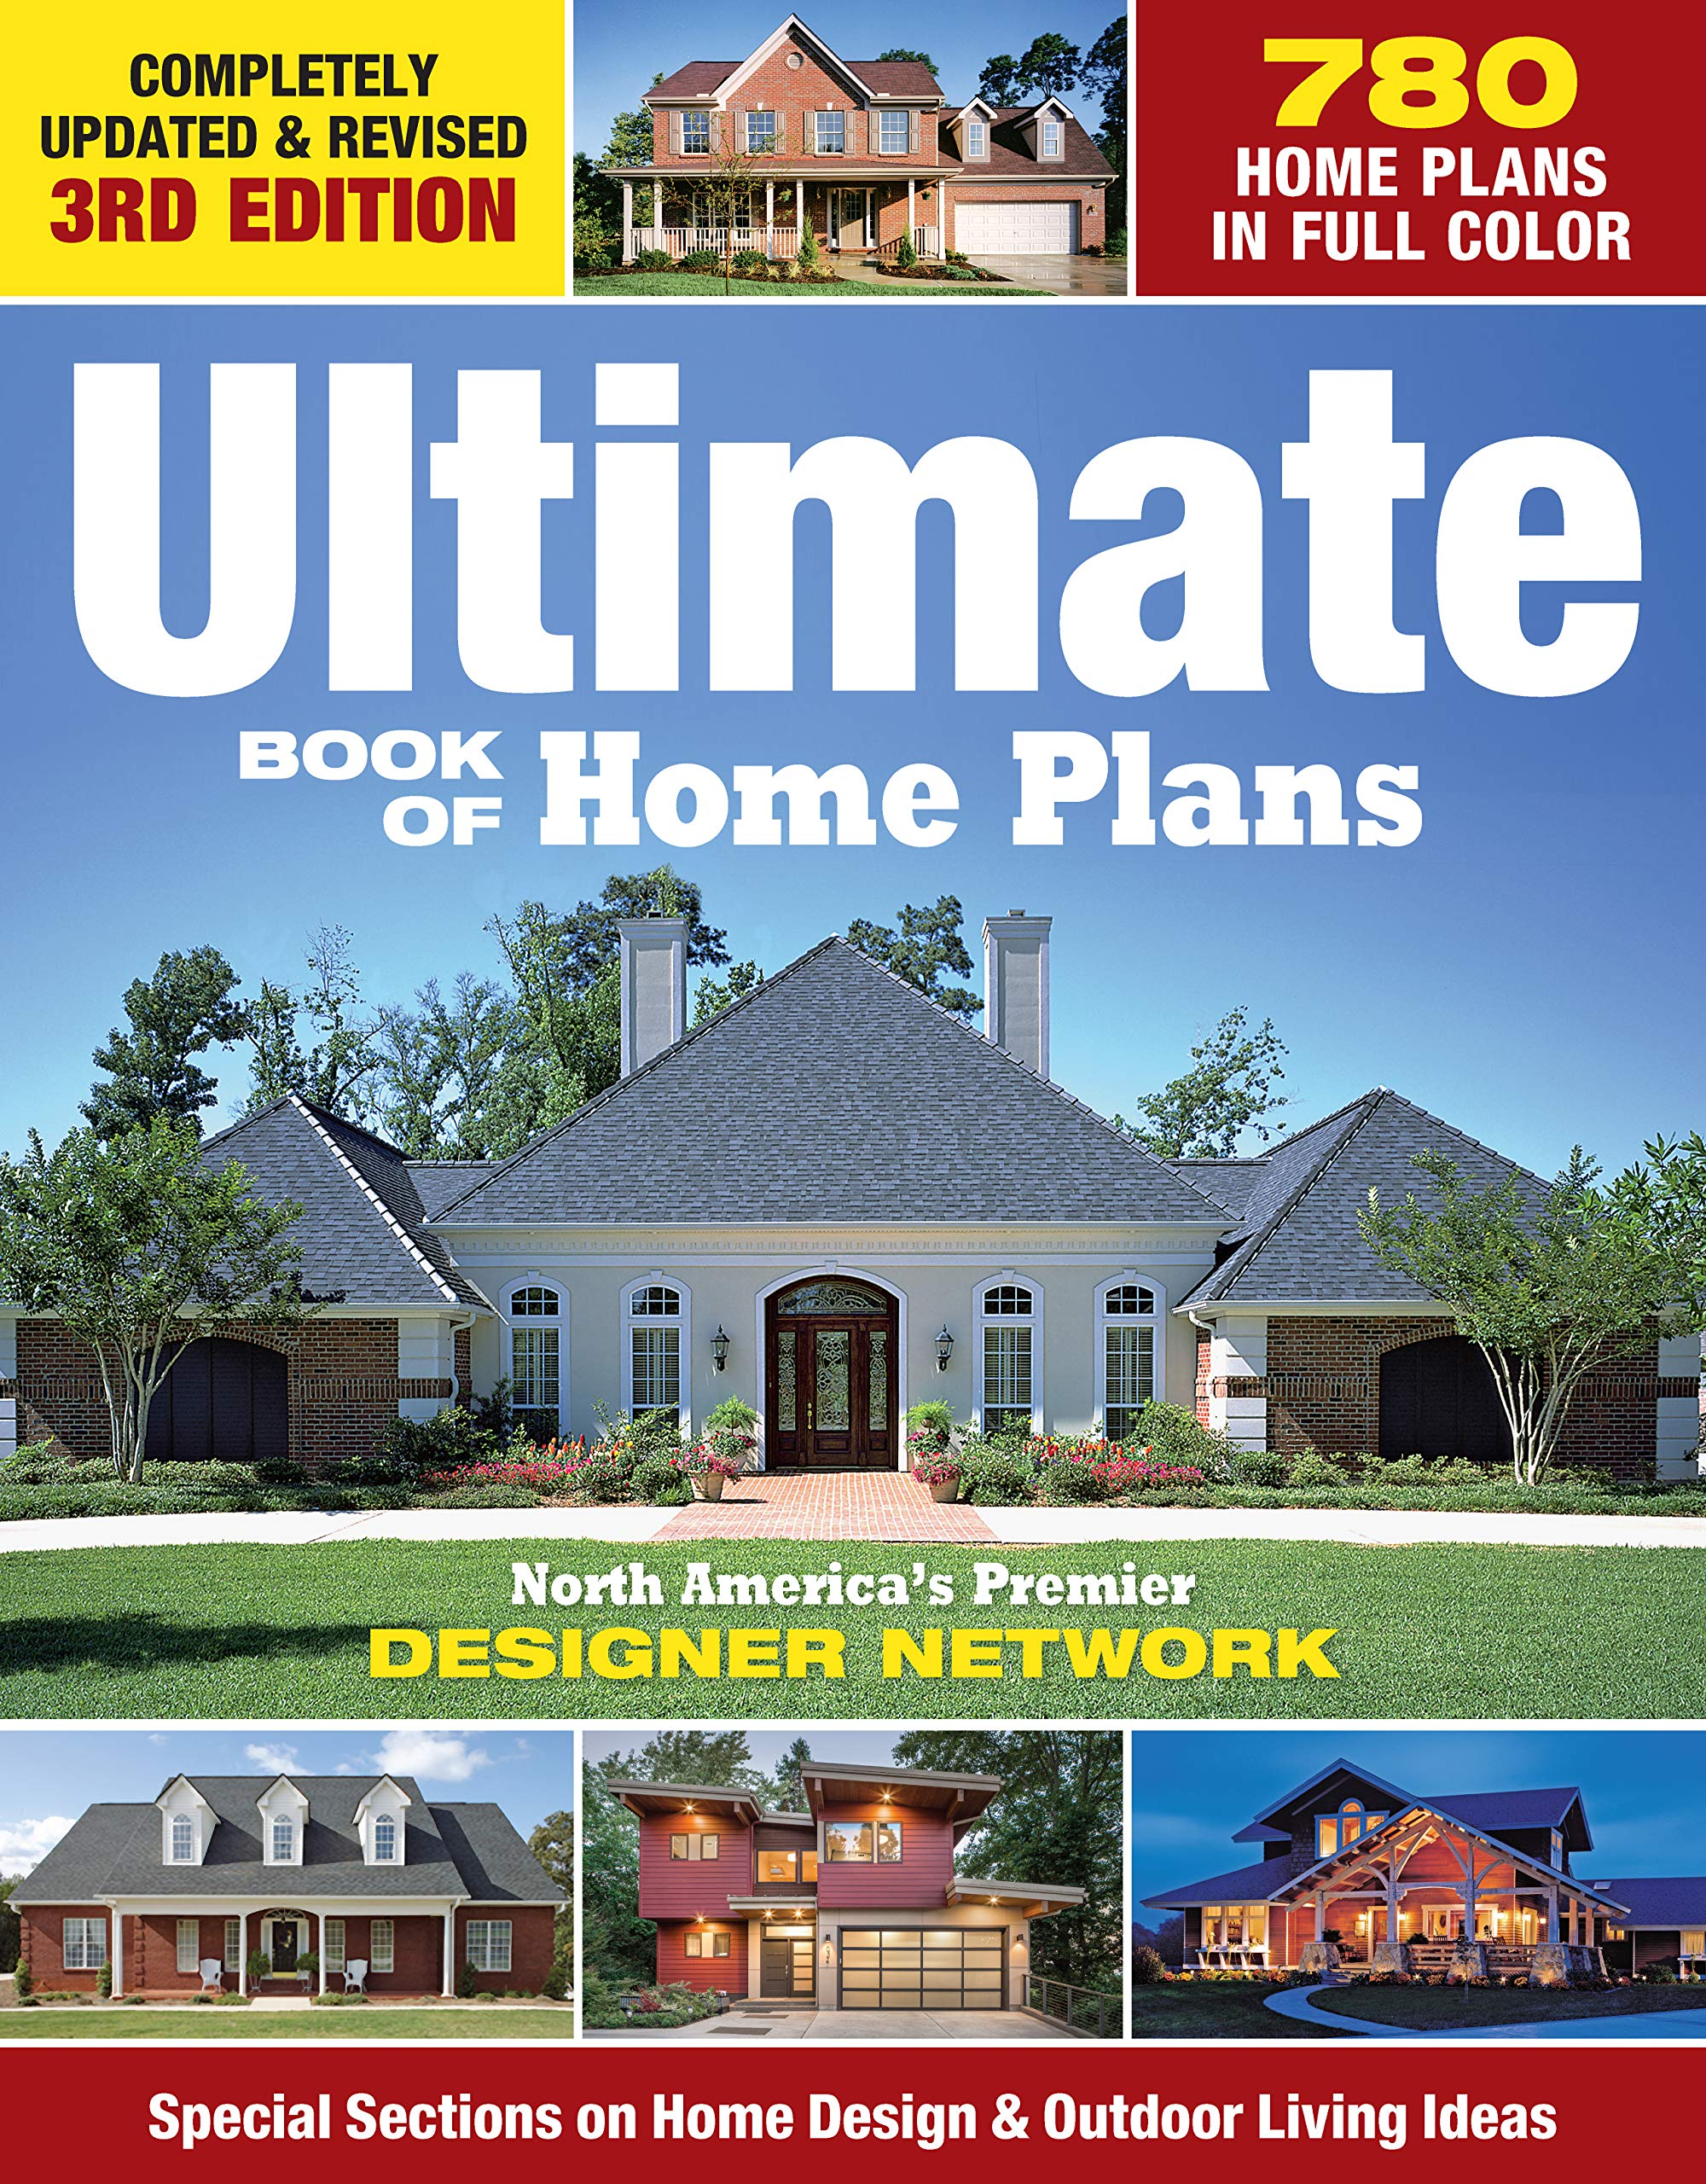 Ultimate Book of Home Plans: 780 Home Plans in Full Color ... on courtyard house plans, wrap around porch house plans, loft house plans, secret passage house plans, fox trot house plans, curved stair house plans, mariner house plans, covered breezeway plans, house house plans, dog trot house plans, monterey house plans, great room house plans, patio home 2 bedroom plans, cabin house plans, entryway house plans, mud room house plans, utility room house plans, angled house plans, man cave house plans, attic house plans,